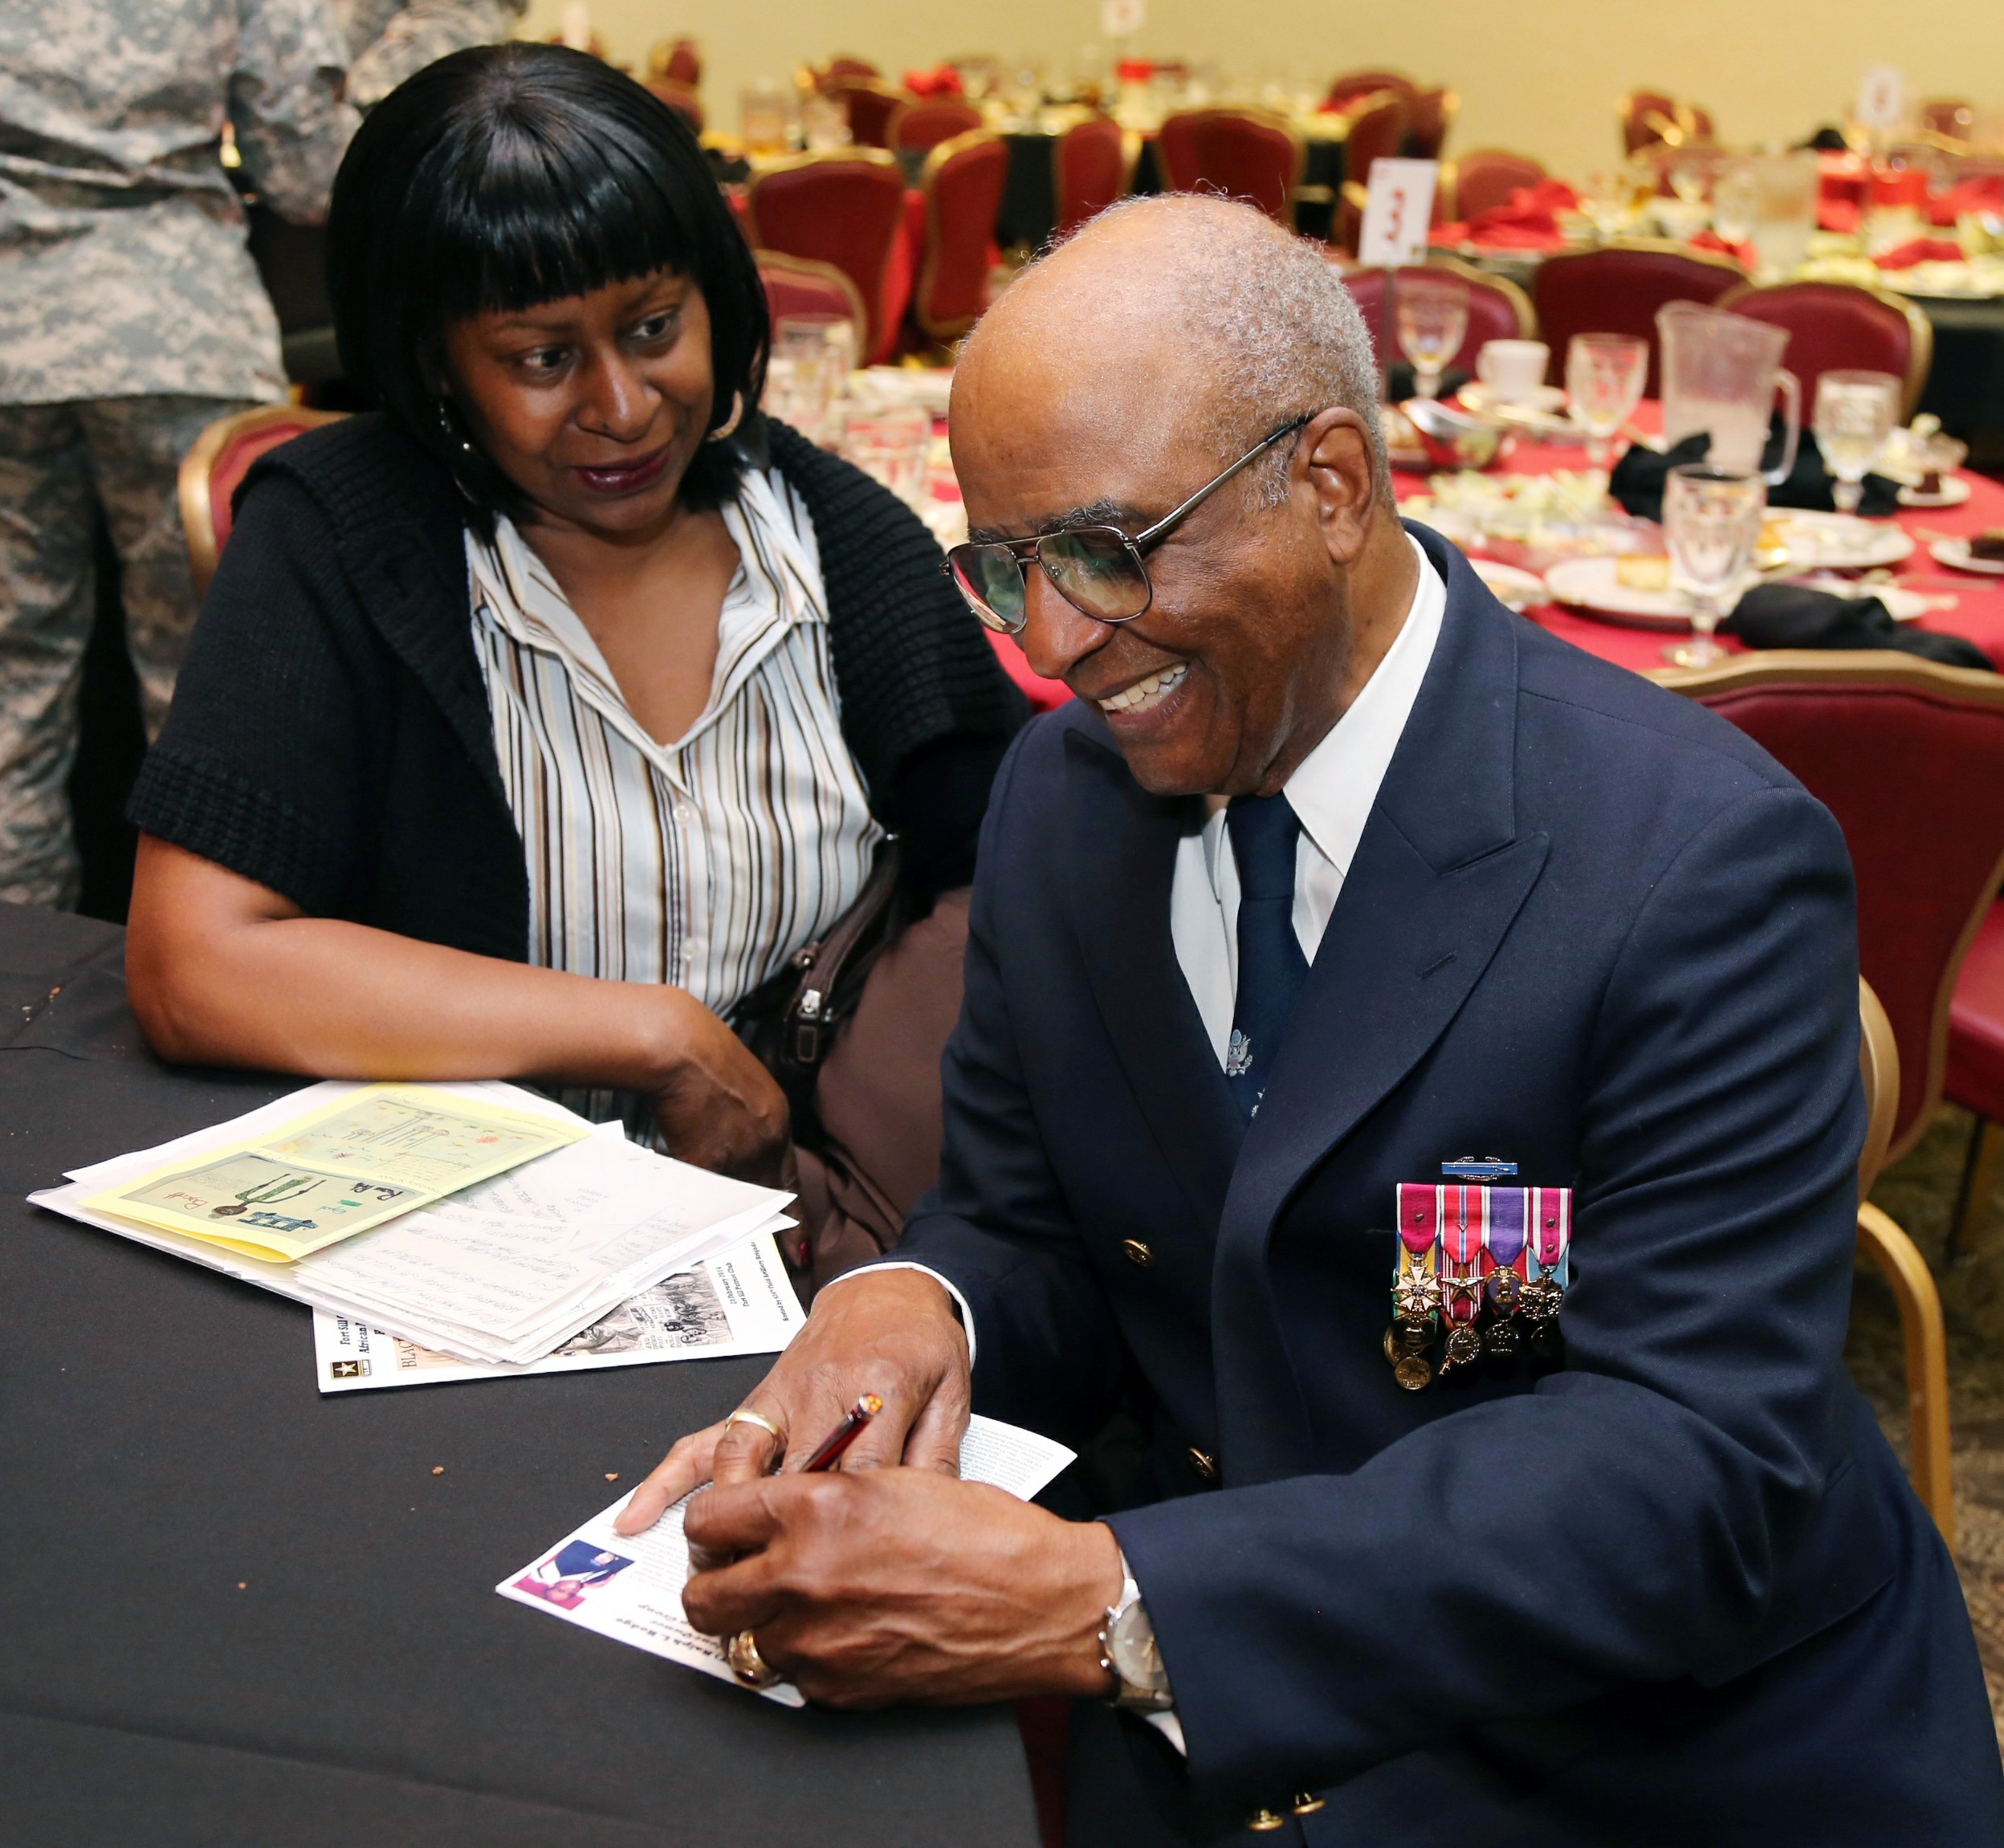 fort sill celebrates african american black history month hodge was the guest speaker and he spoke about the korean war the u s constitution and his love for america photo credit jeff crawley